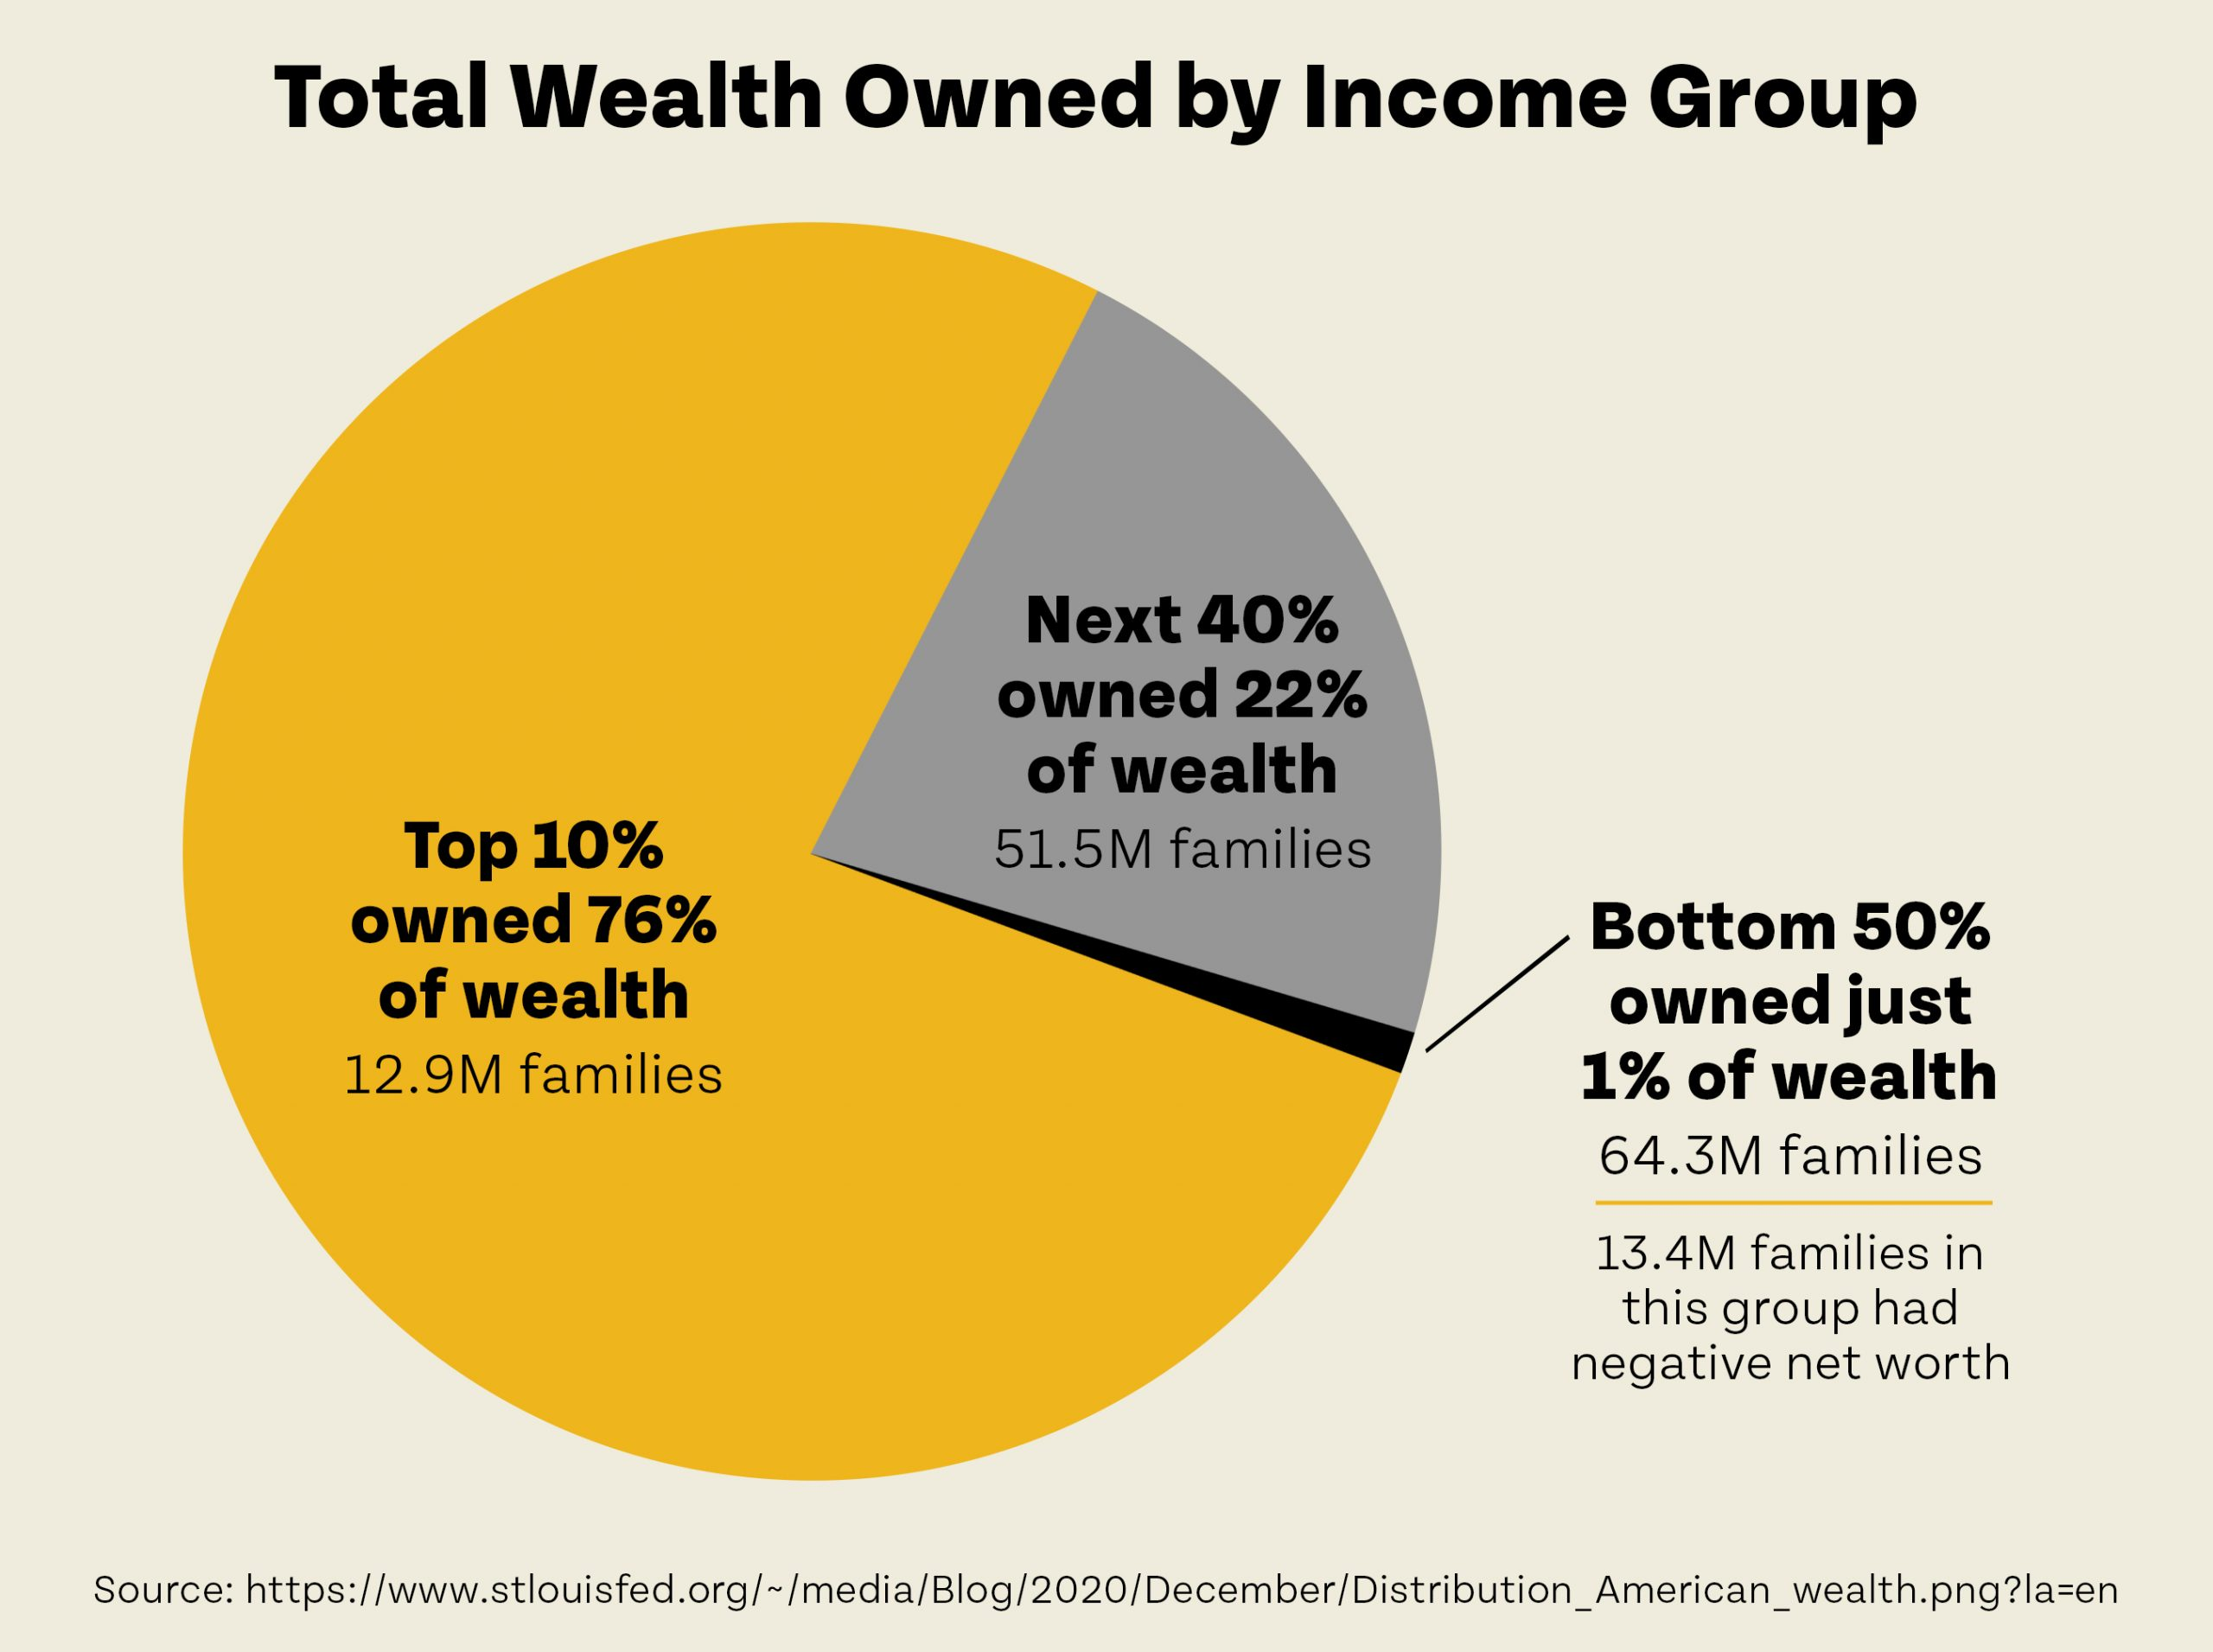 Total Wealth Owned by Income group